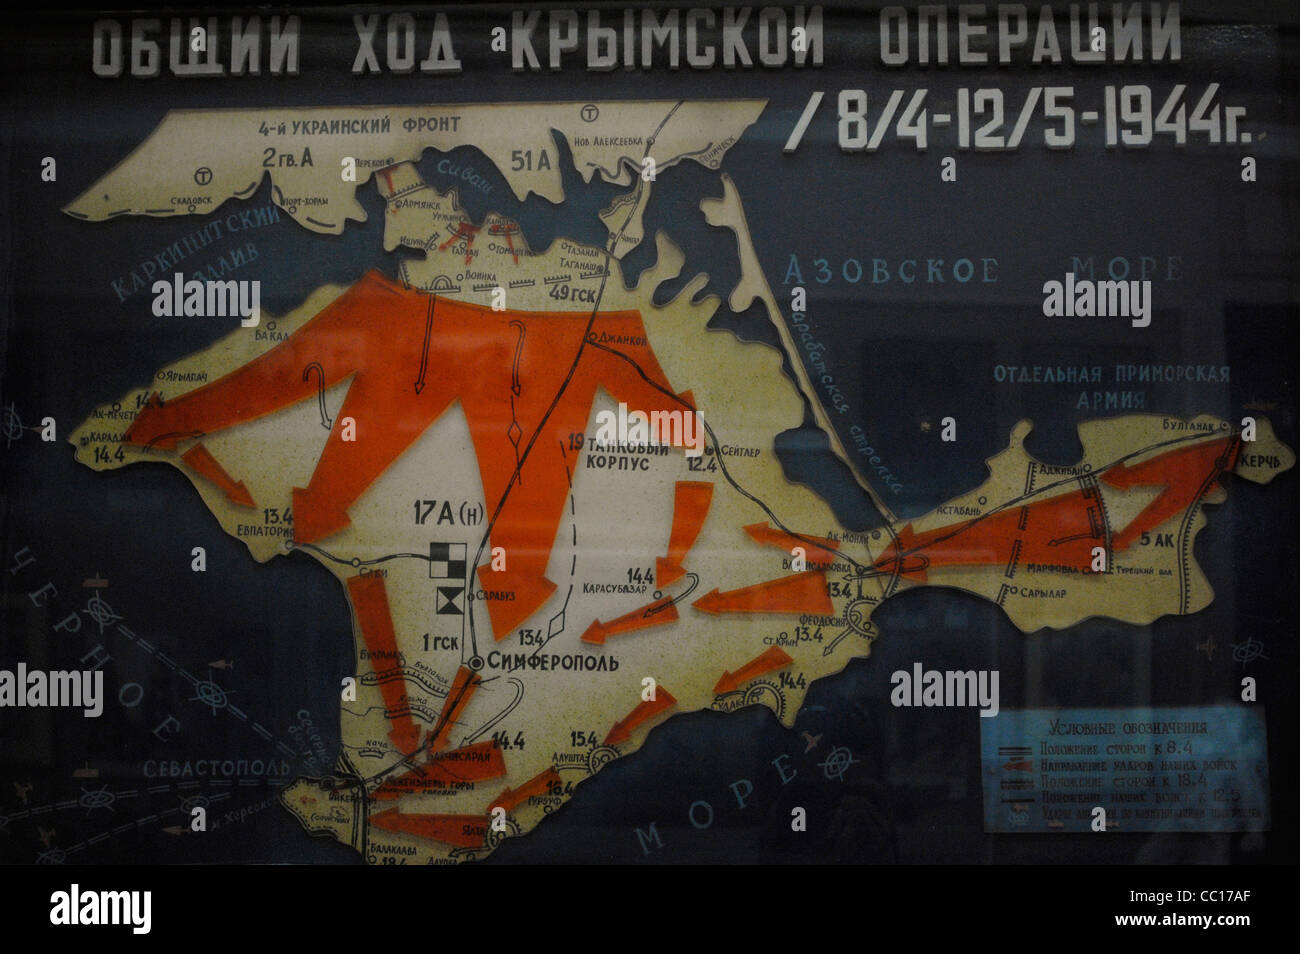 Second World War. The Crimean Offensive (8 April-12 May 1944) known as the Battle of Crimea. Map. - Stock Image